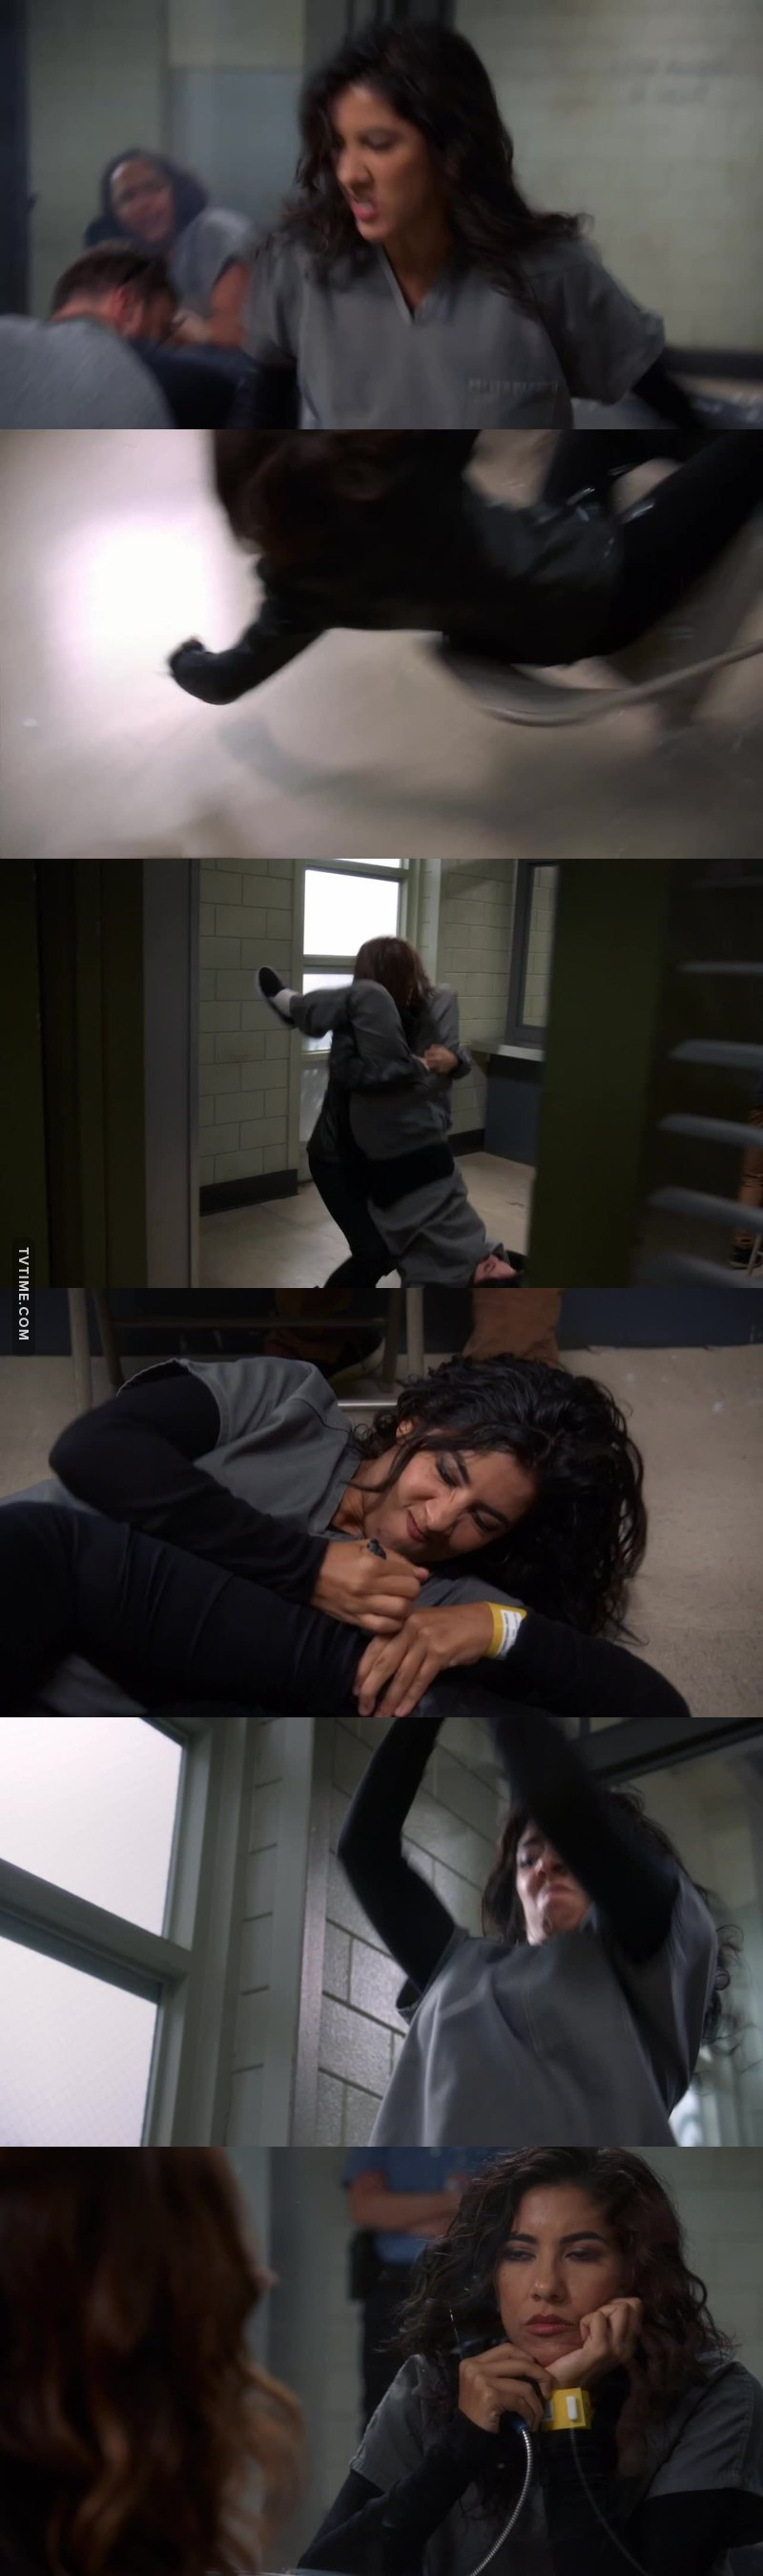 Man I actually thought the scene was for real. I guess Rosa is such a badass that her breaking the glass and kicking ass is more realistic than her dreaming about doing it lool.